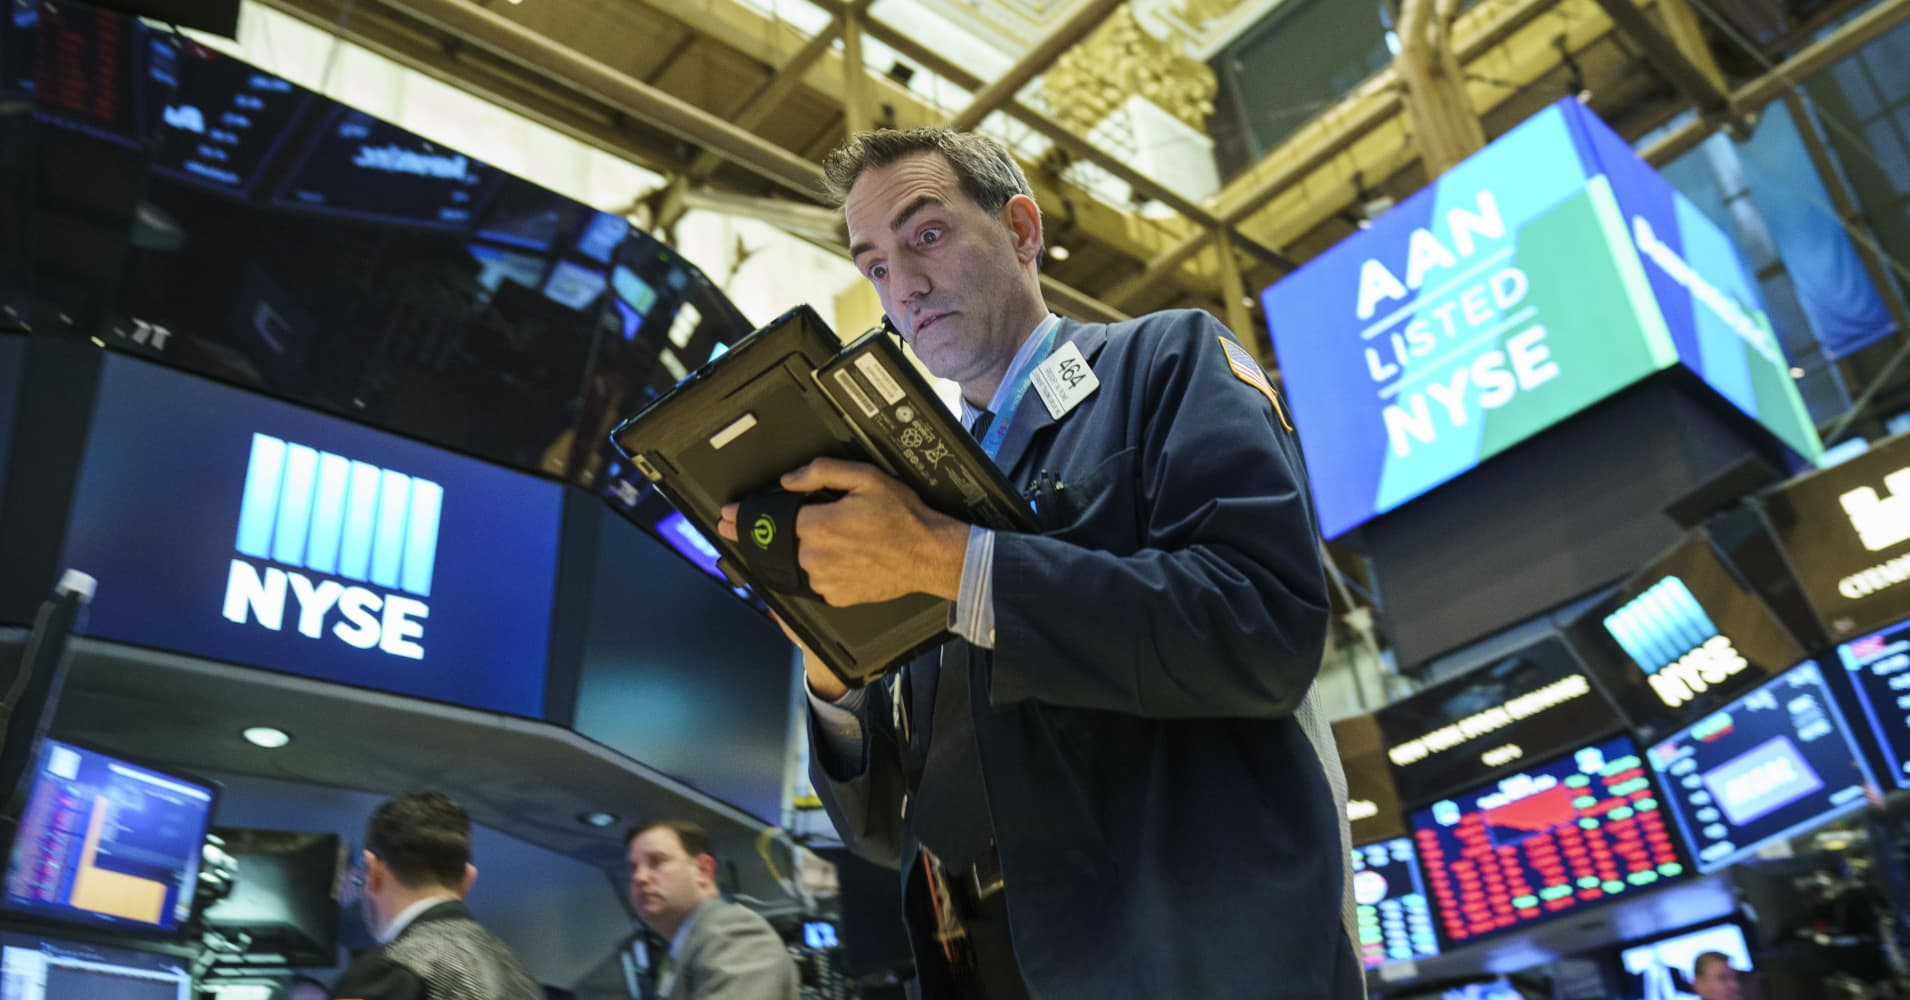 US Treasury yields fall as traders look ahead to data, bond auctions